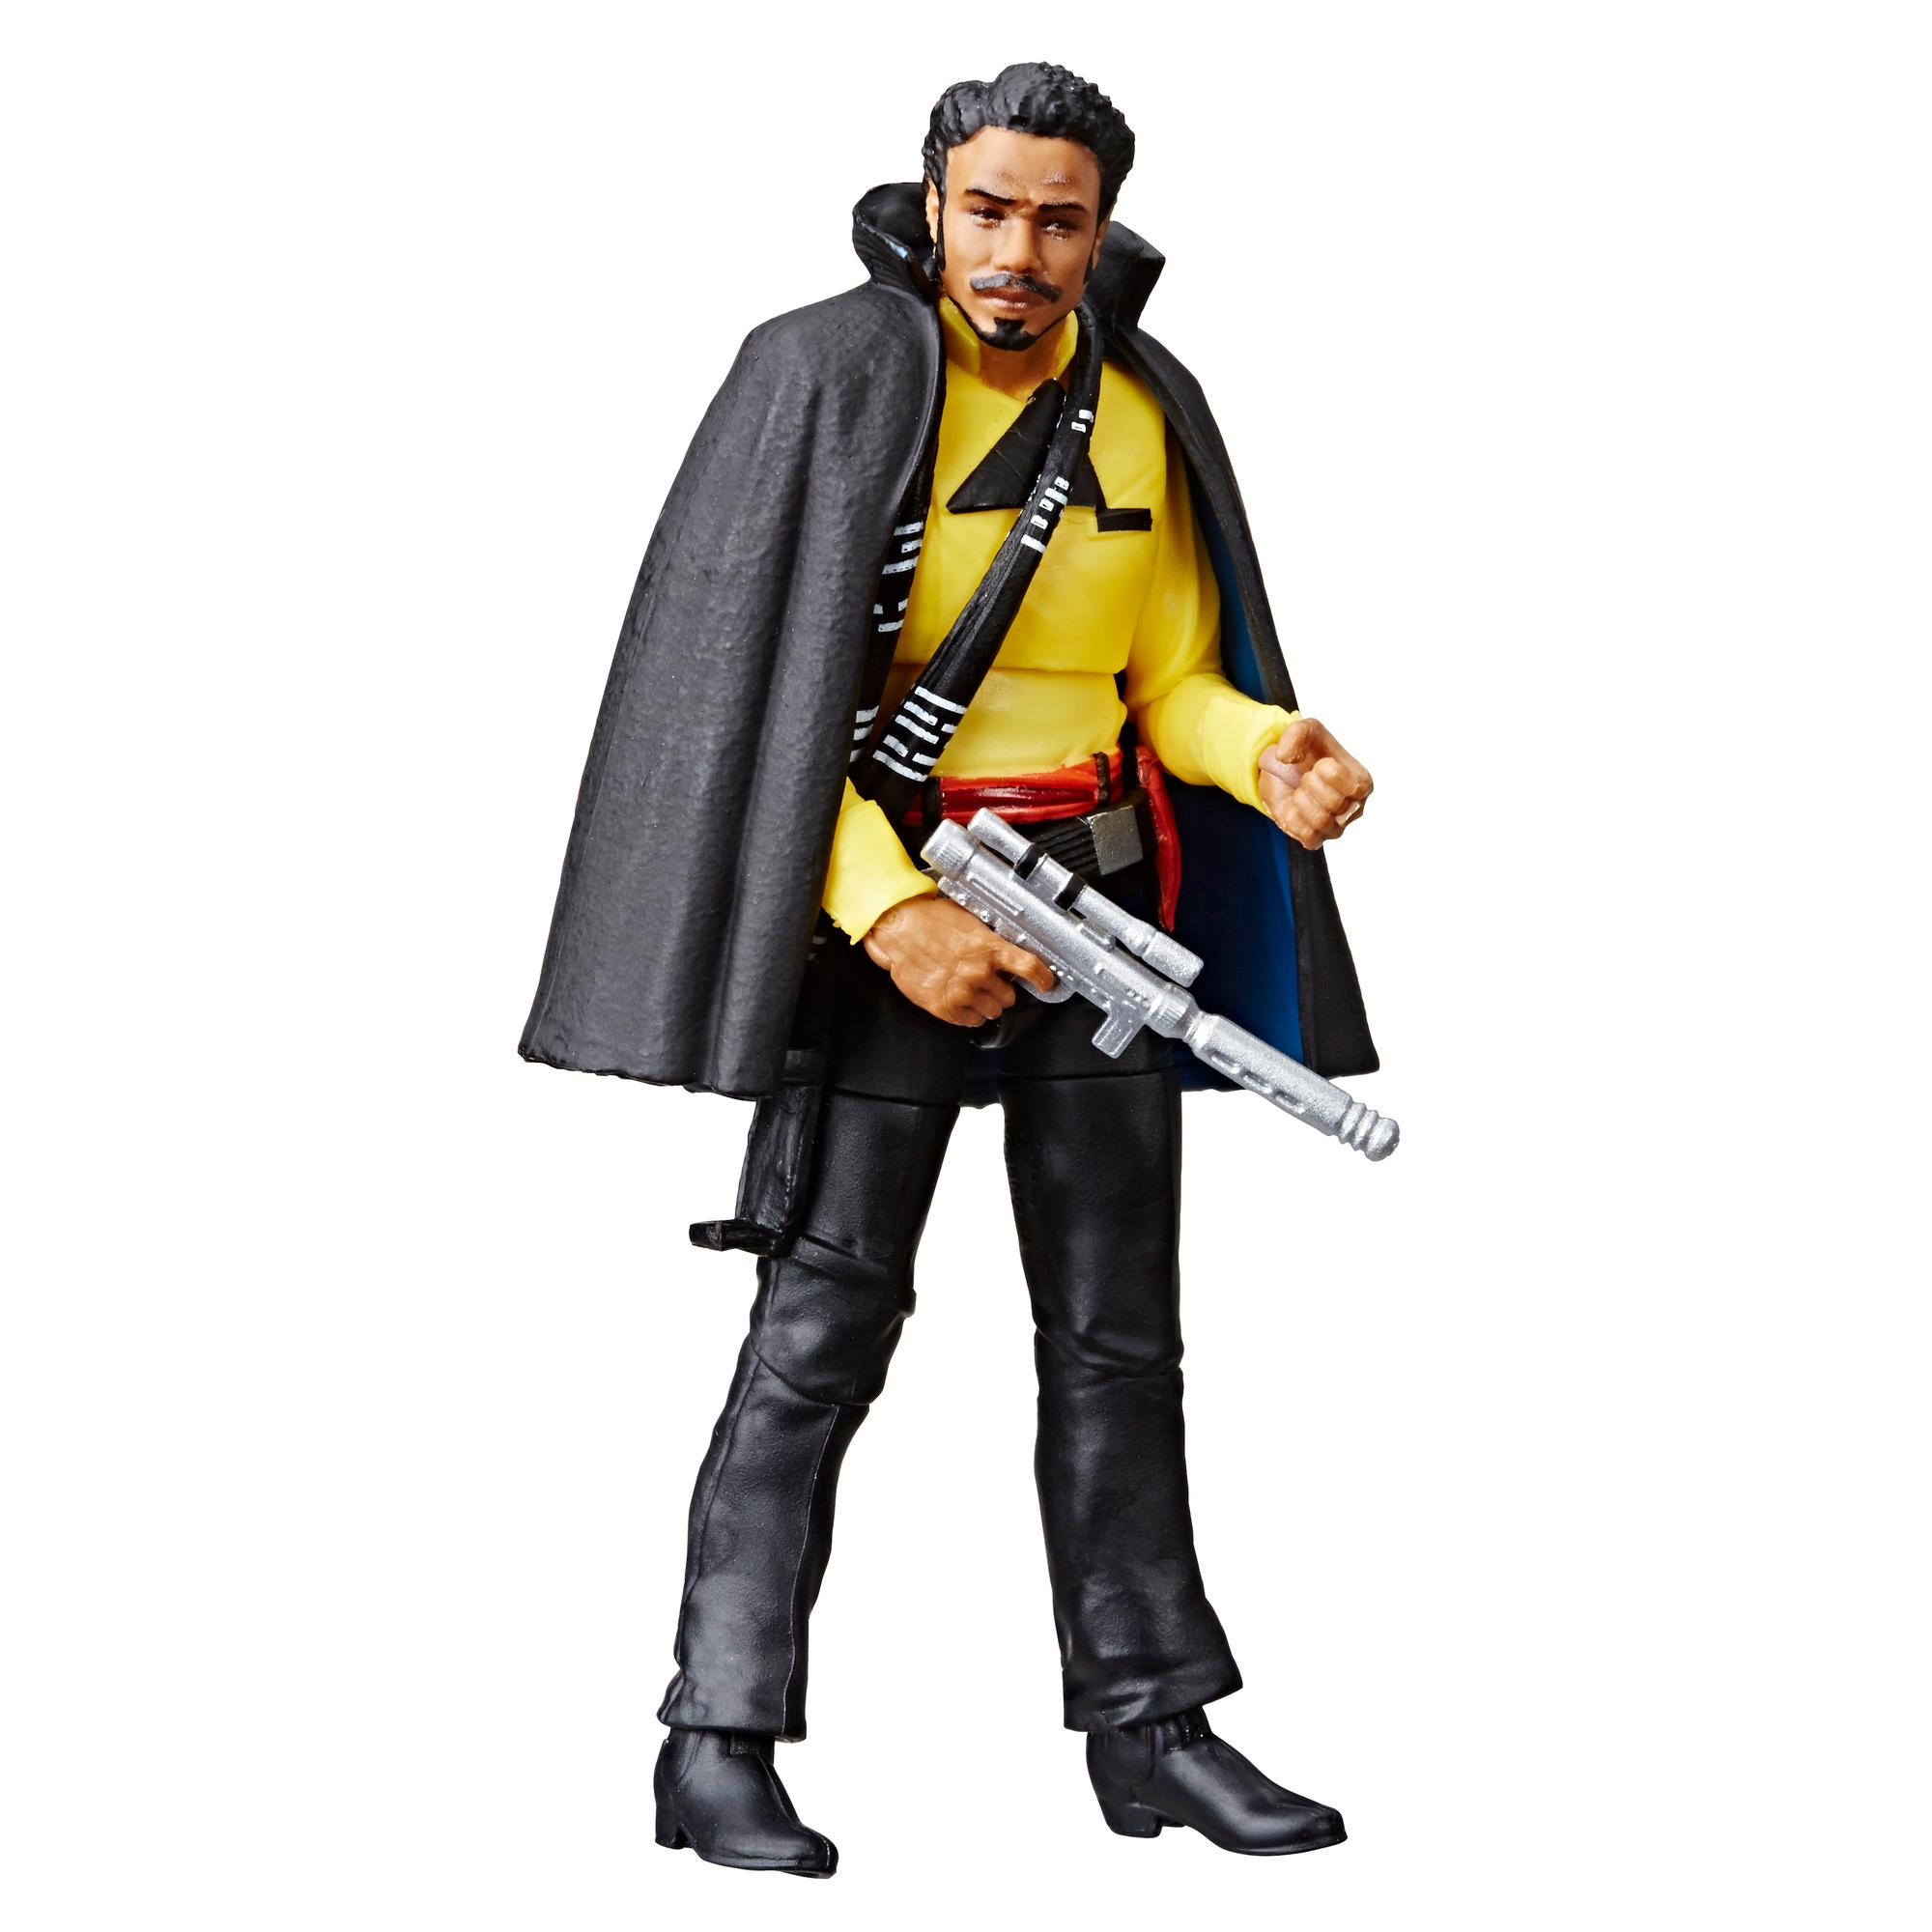 Star Wars The Vintage Collection Solo: A Star Wars Story Lando Calrissian 3.75-inch Figure